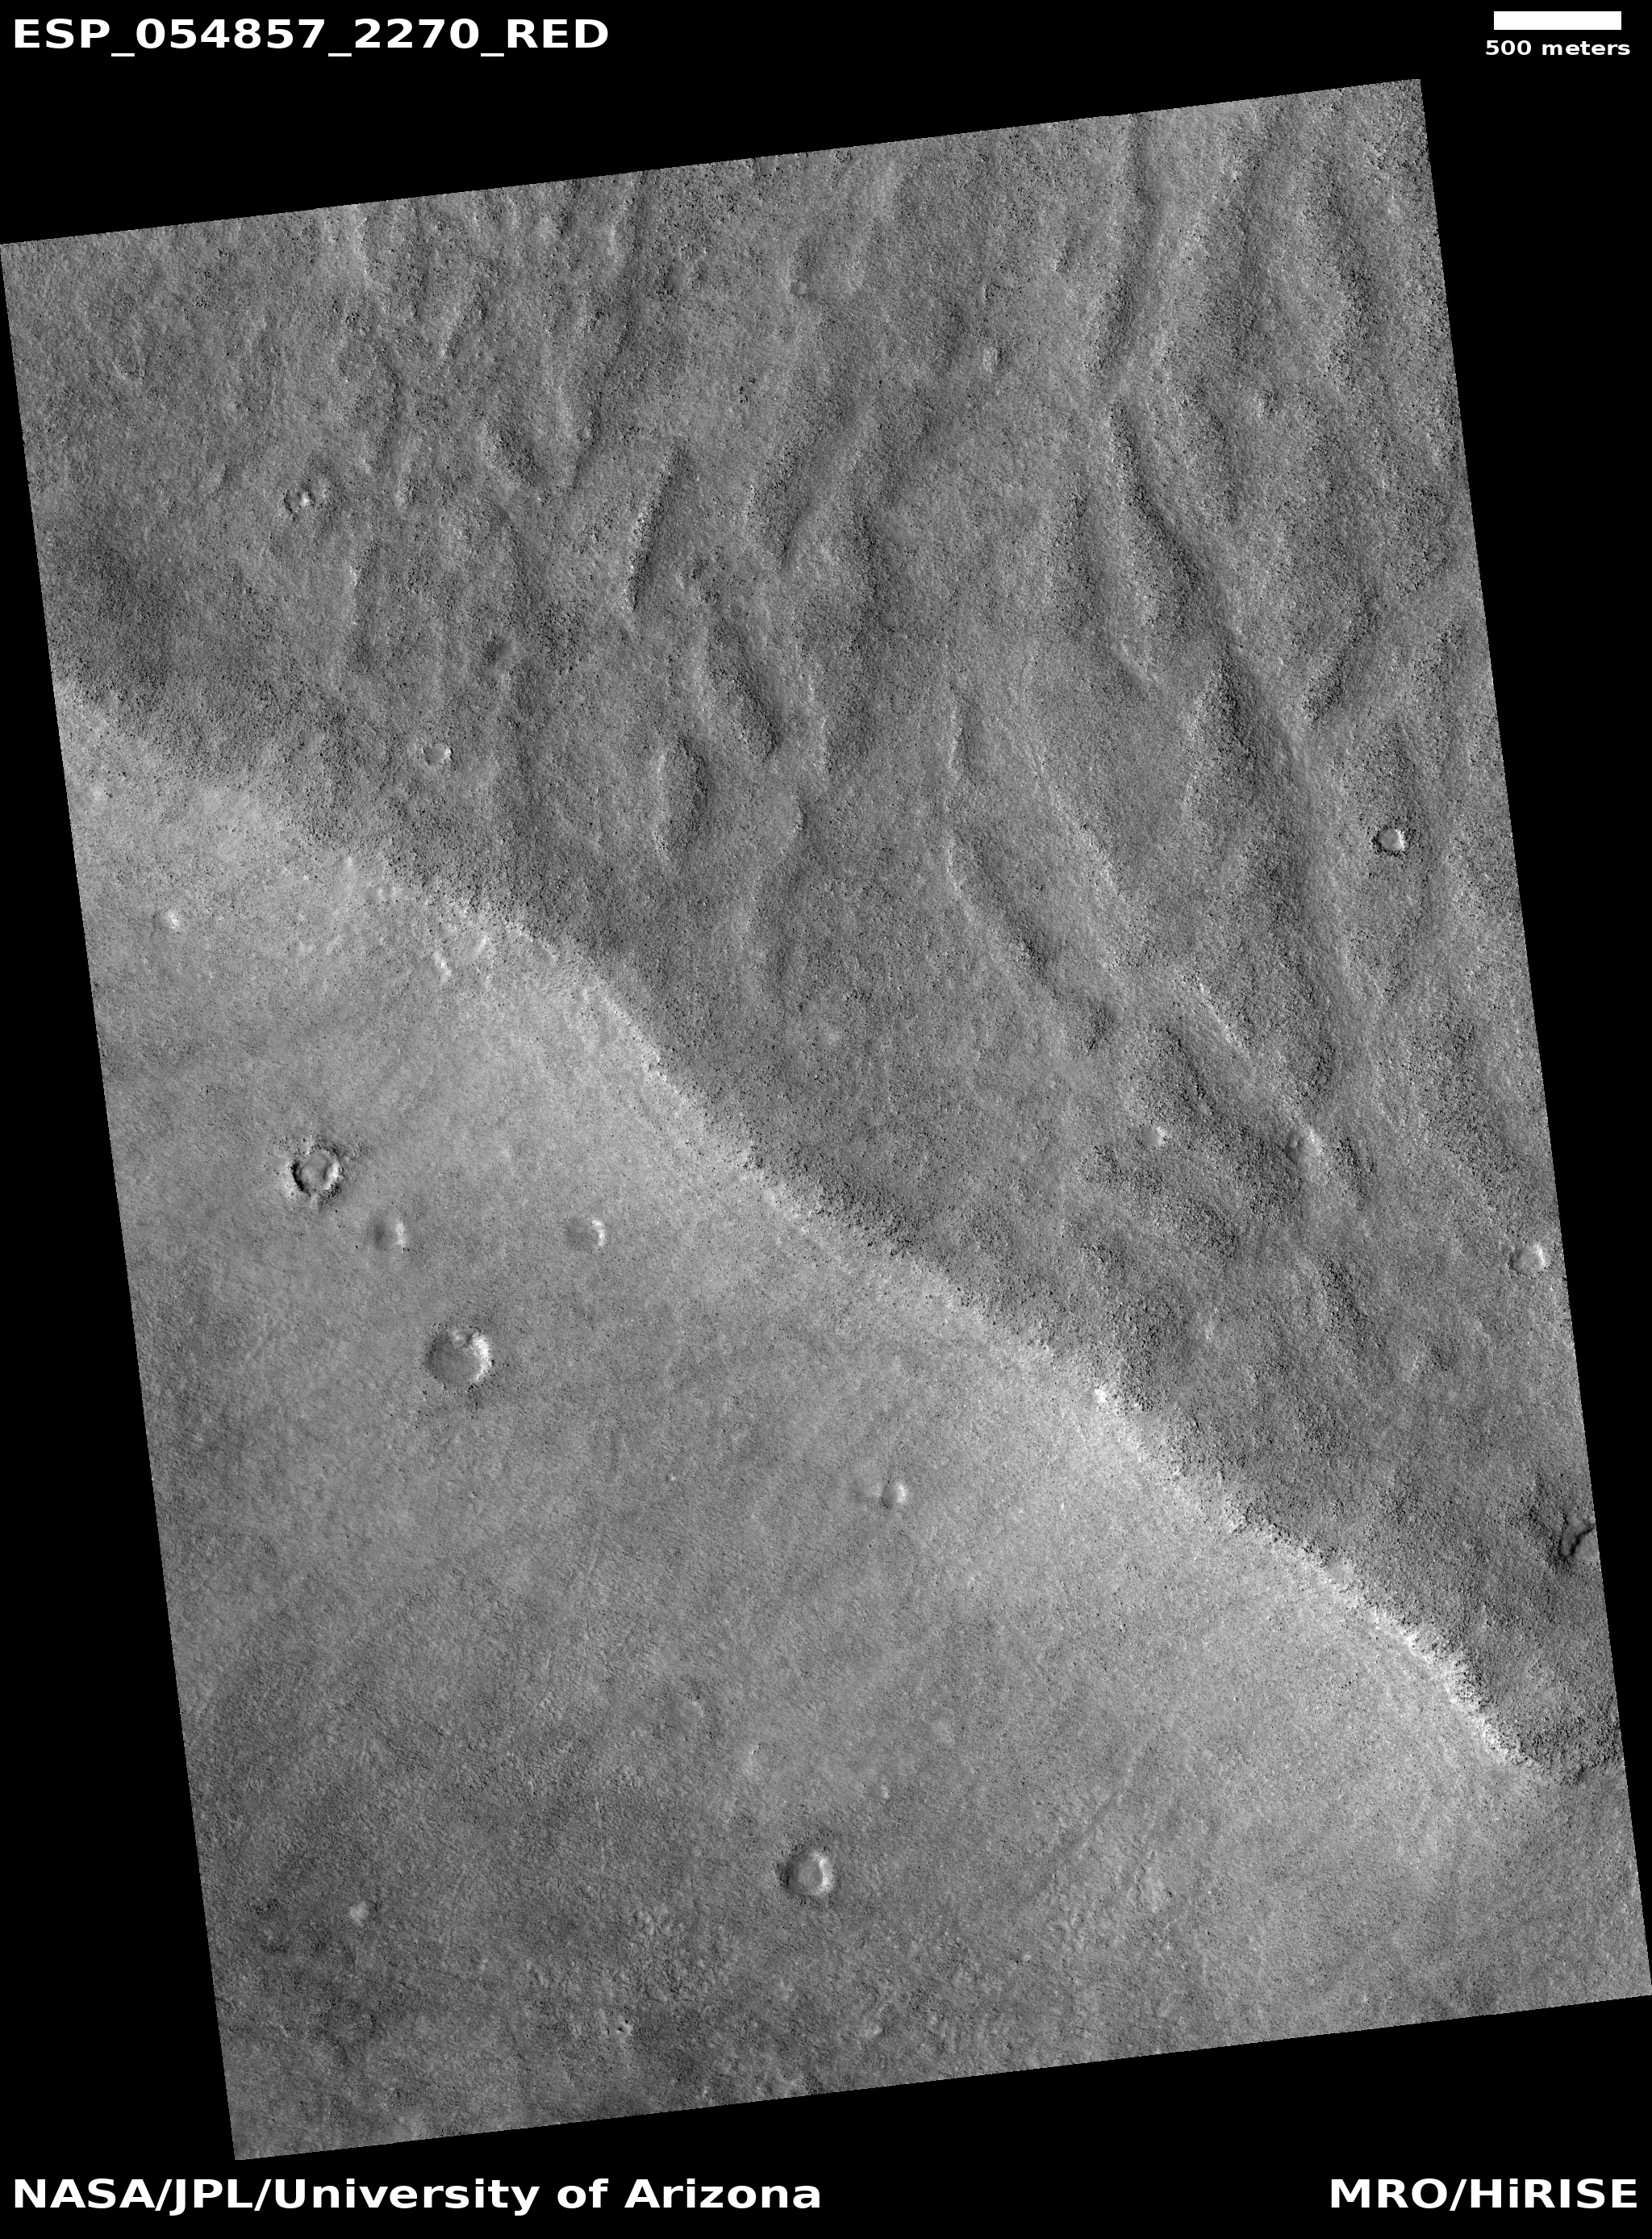 Channels that may have been made by the backwash of tsunamis in an ocean Image is from HiRISE under the HiWish program